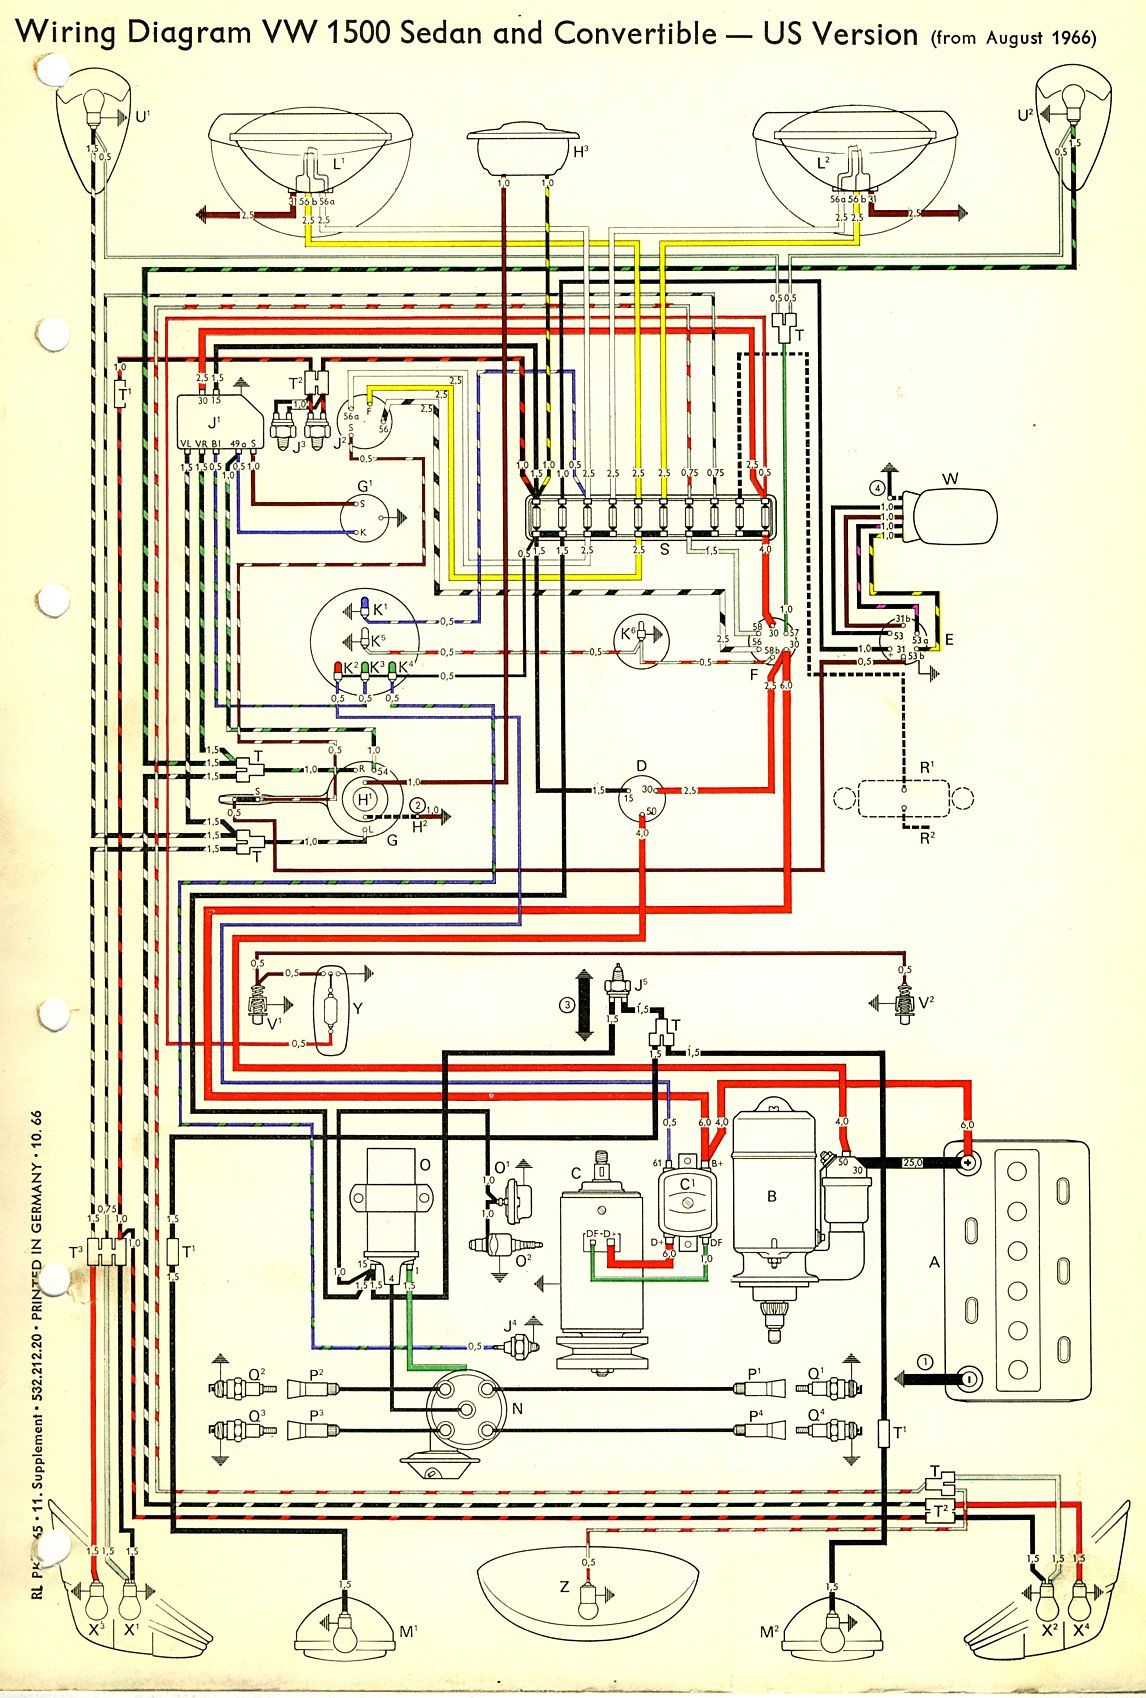 1adf990c0efb617c789fdd21338448b0 1967 beetle wiring diagram (usa) thegoldenbug com best 1967 vw 1971 vw bus wiring diagram at beritabola.co